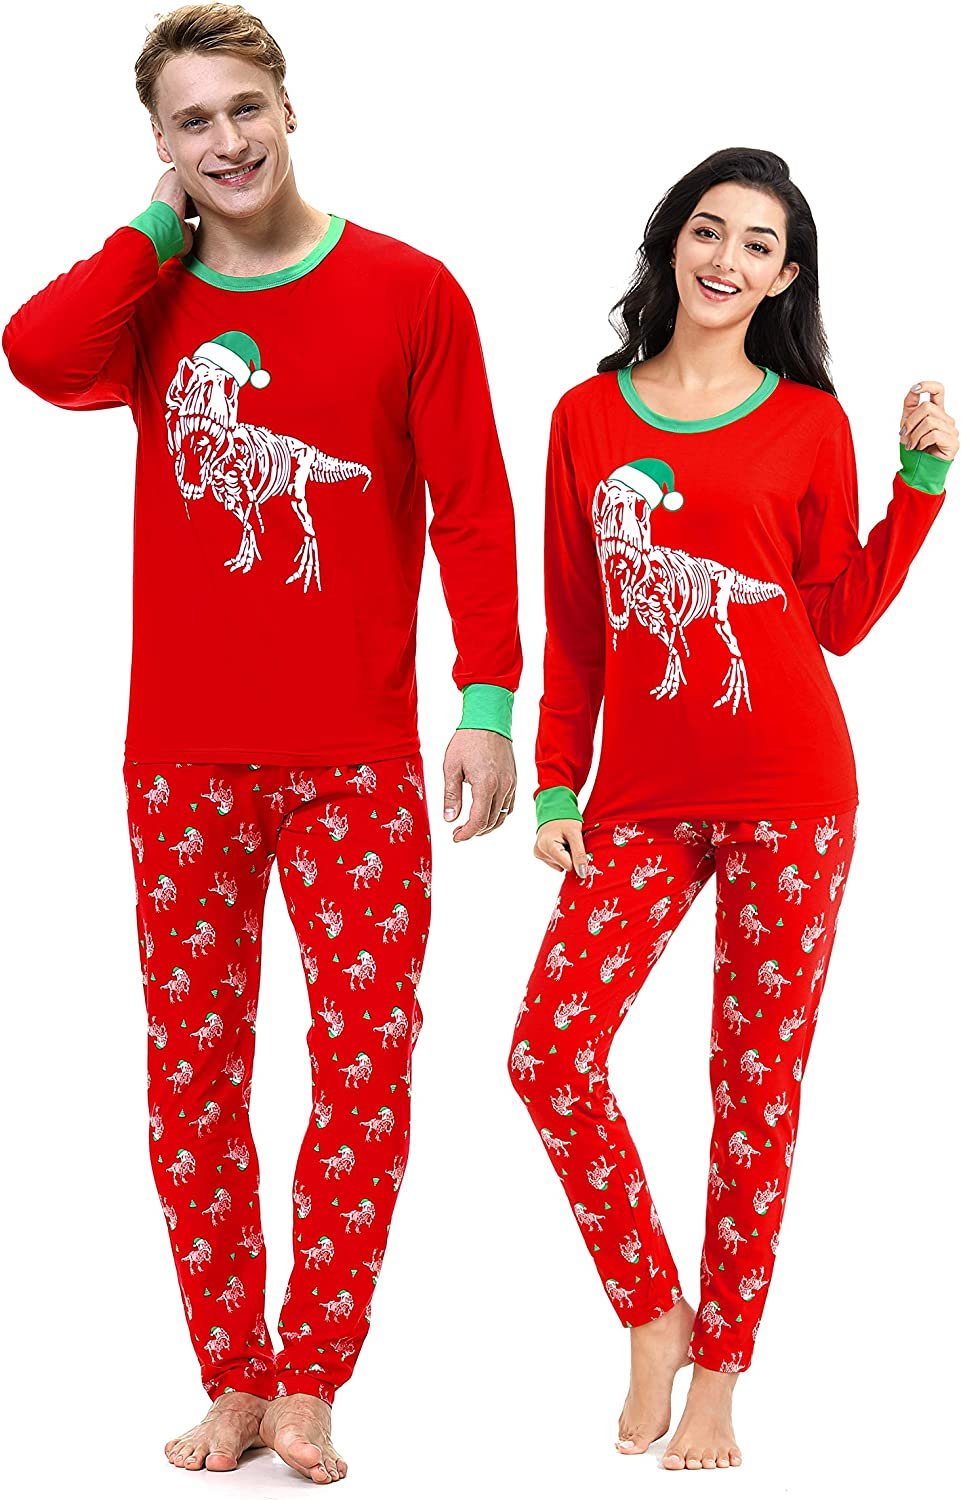 Benaive Matching Family Christmas Pajamas Set Boys Girls Holiday Pjs for Women Men Sleepwear